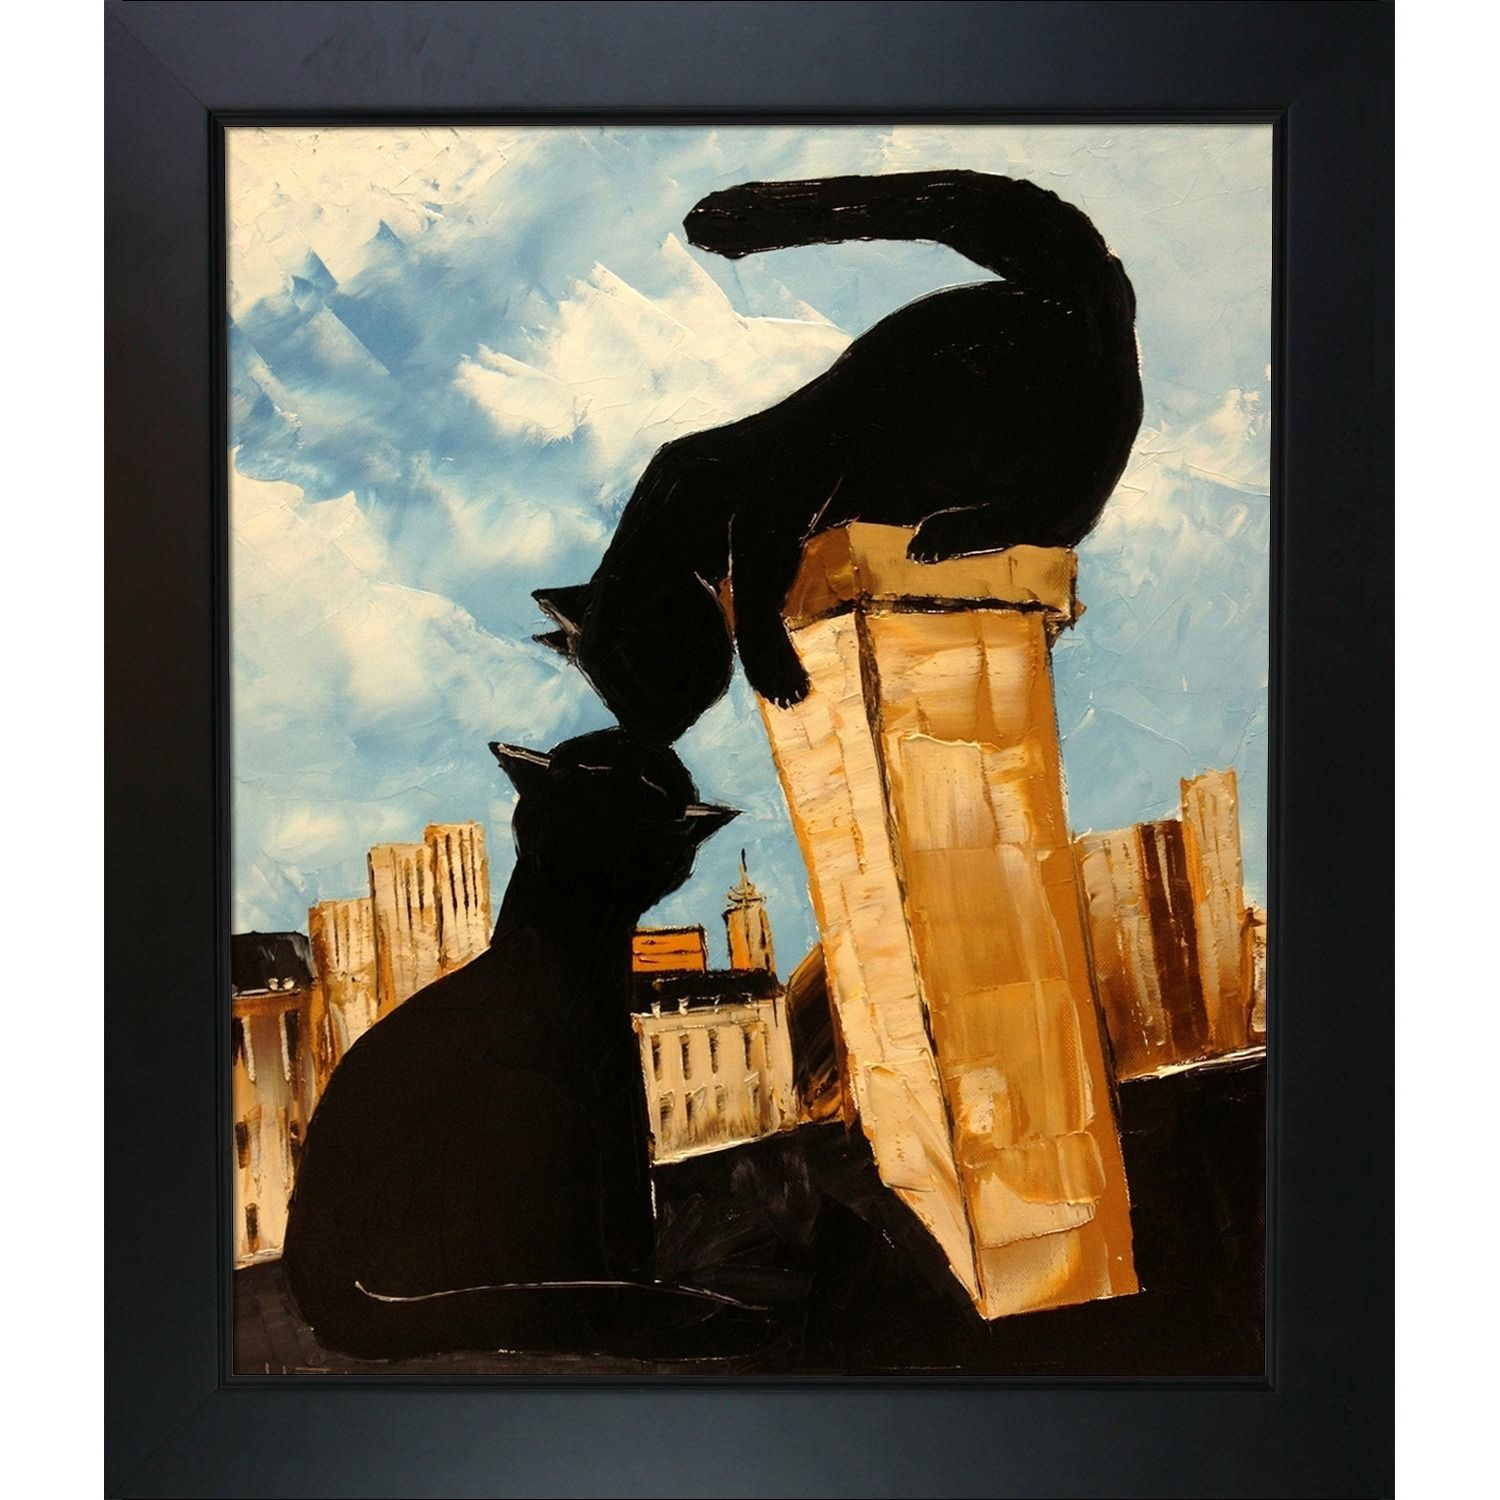 Overstock Com Online Shopping Bedding Furniture Electronics Jewelry Clothing More Black Cat Art Cats Illustration Cat Artwork Black cat house roof stars silhouette